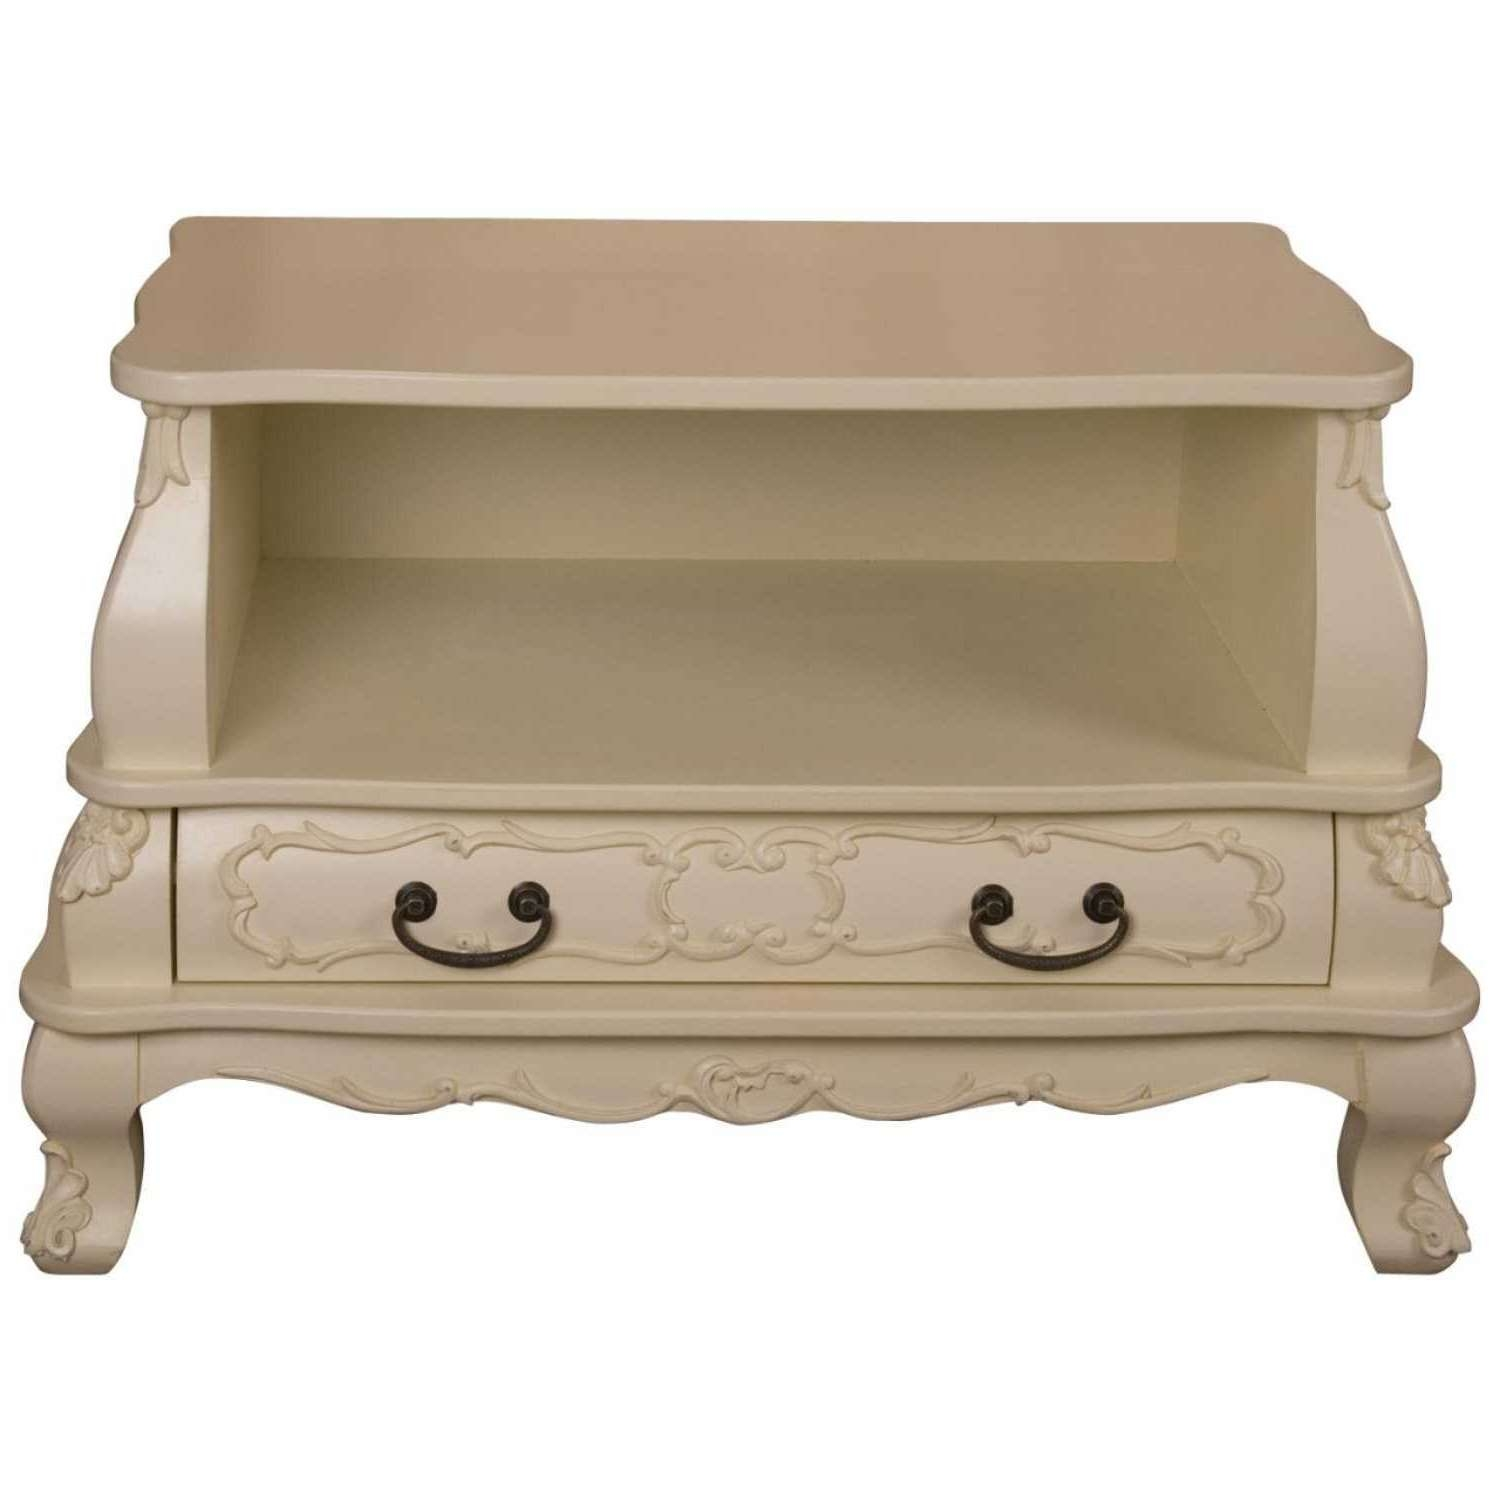 Cream Painted Shabby Chic Bergere Tv Cabinet Regarding Shabby Chic Tv Cabinets (View 5 of 20)